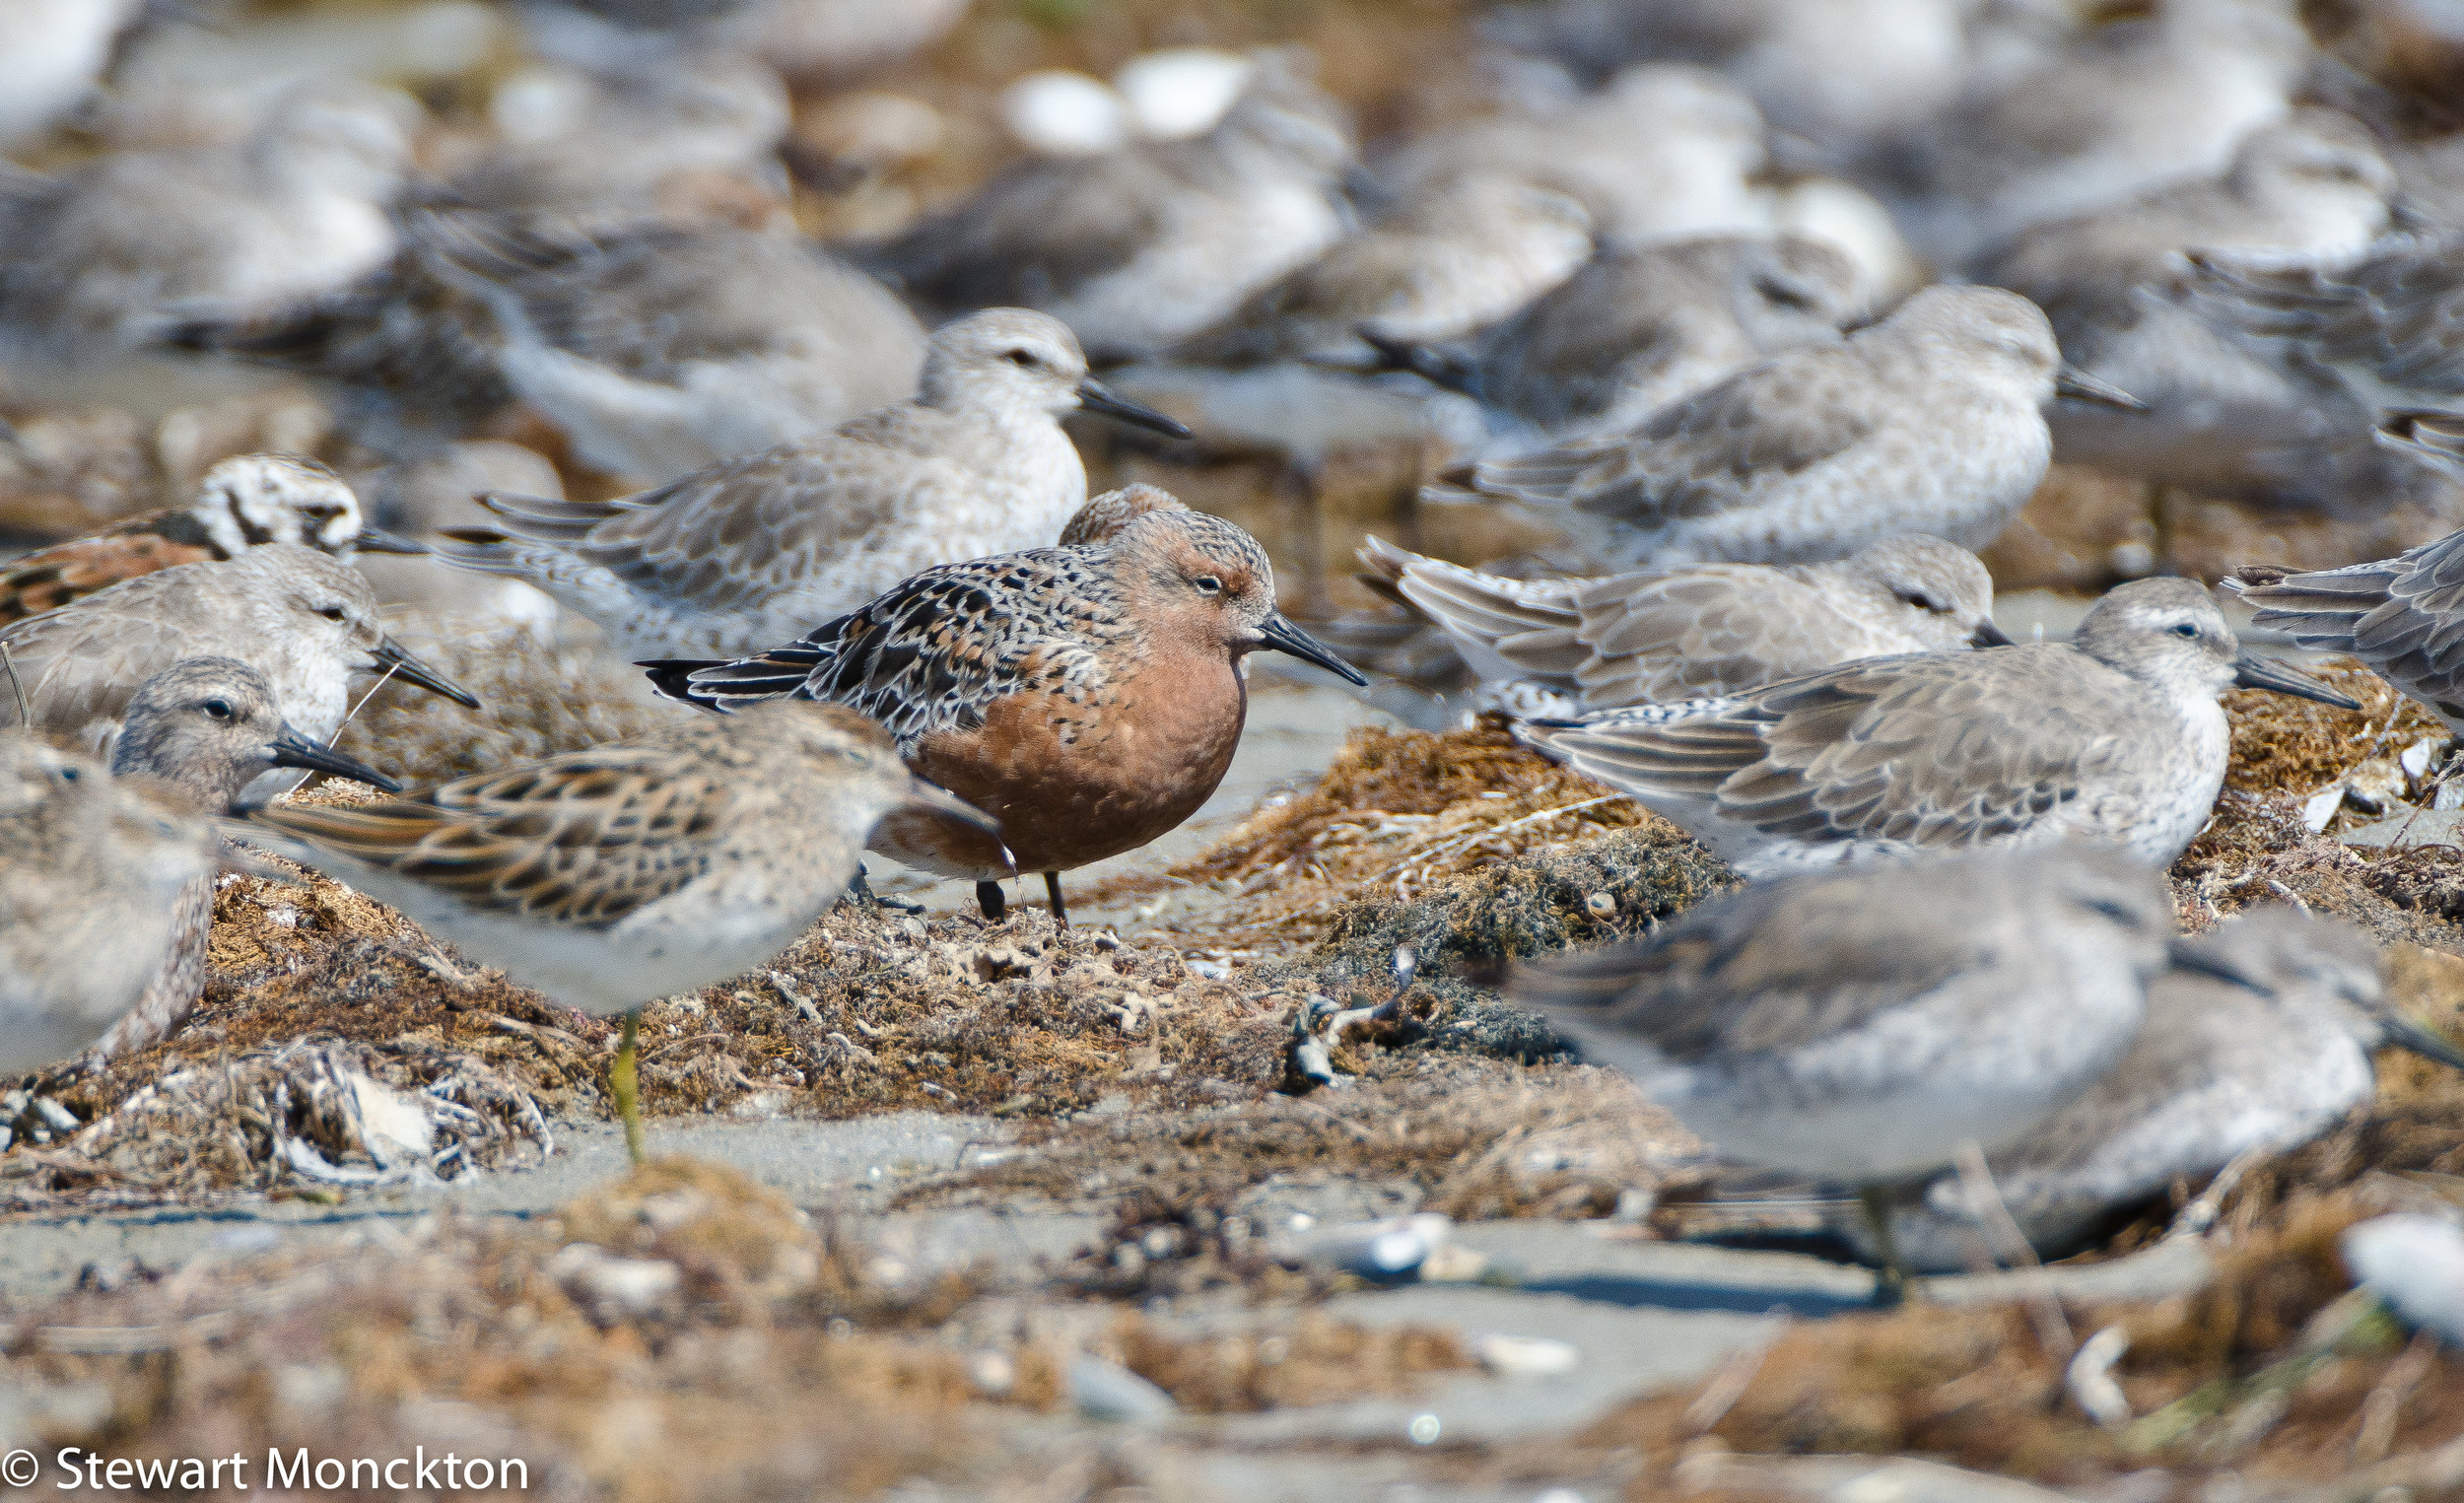 Red Knot (central), Sharptailed Sandpiper (out of focus ginger cap, green legs in the foreground), and Ruddy Turnstone.  Image: Stewart Monckton